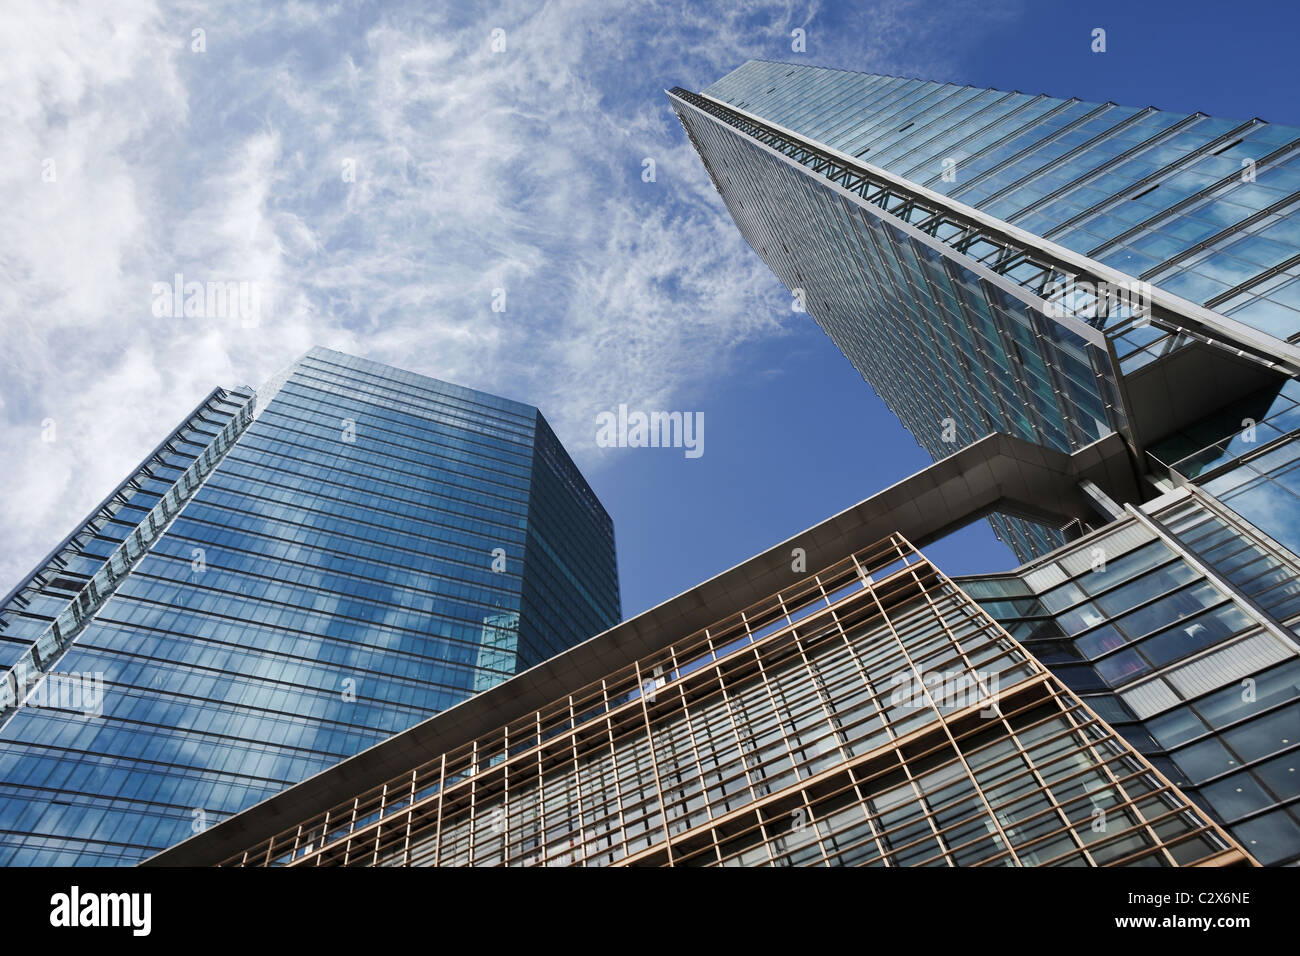 Modern architecture, skyscrapers with glass surface in Beijing central business district, Beijing, China - Stock Image